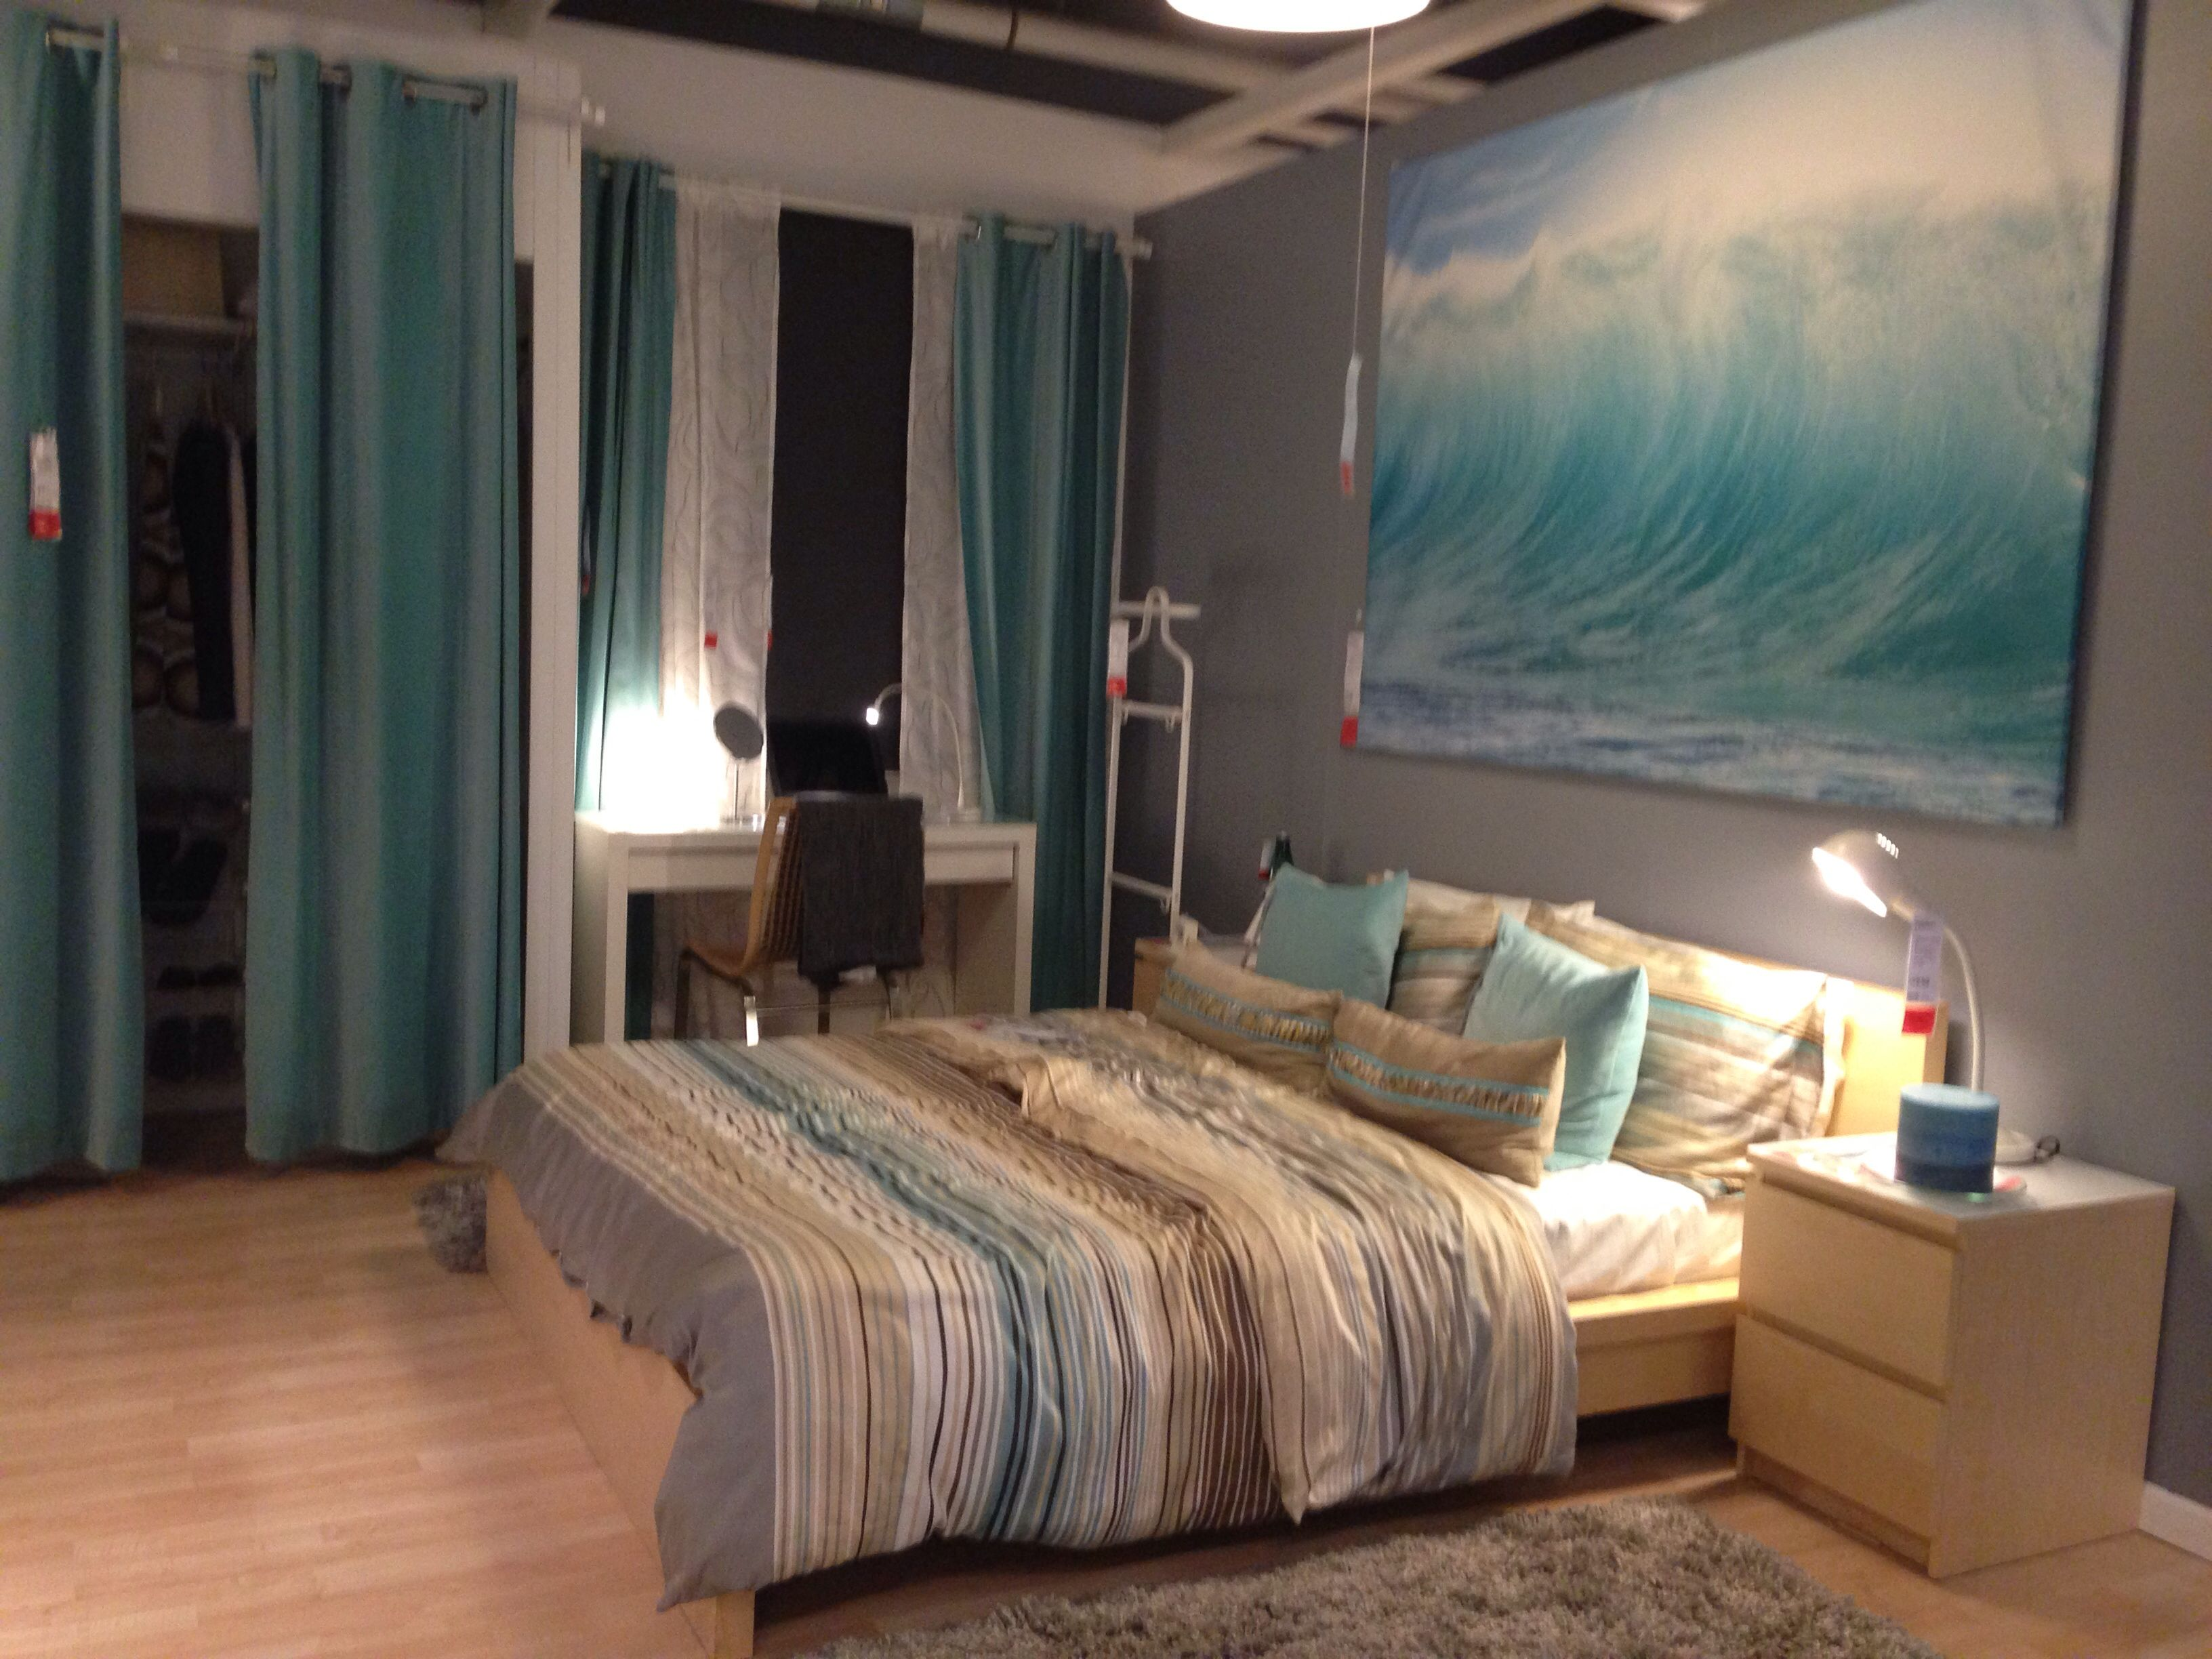 Beach Themed Bedroom Sets  Training4Green  Interior Home Adorable Beach Designs For Bedrooms Inspiration